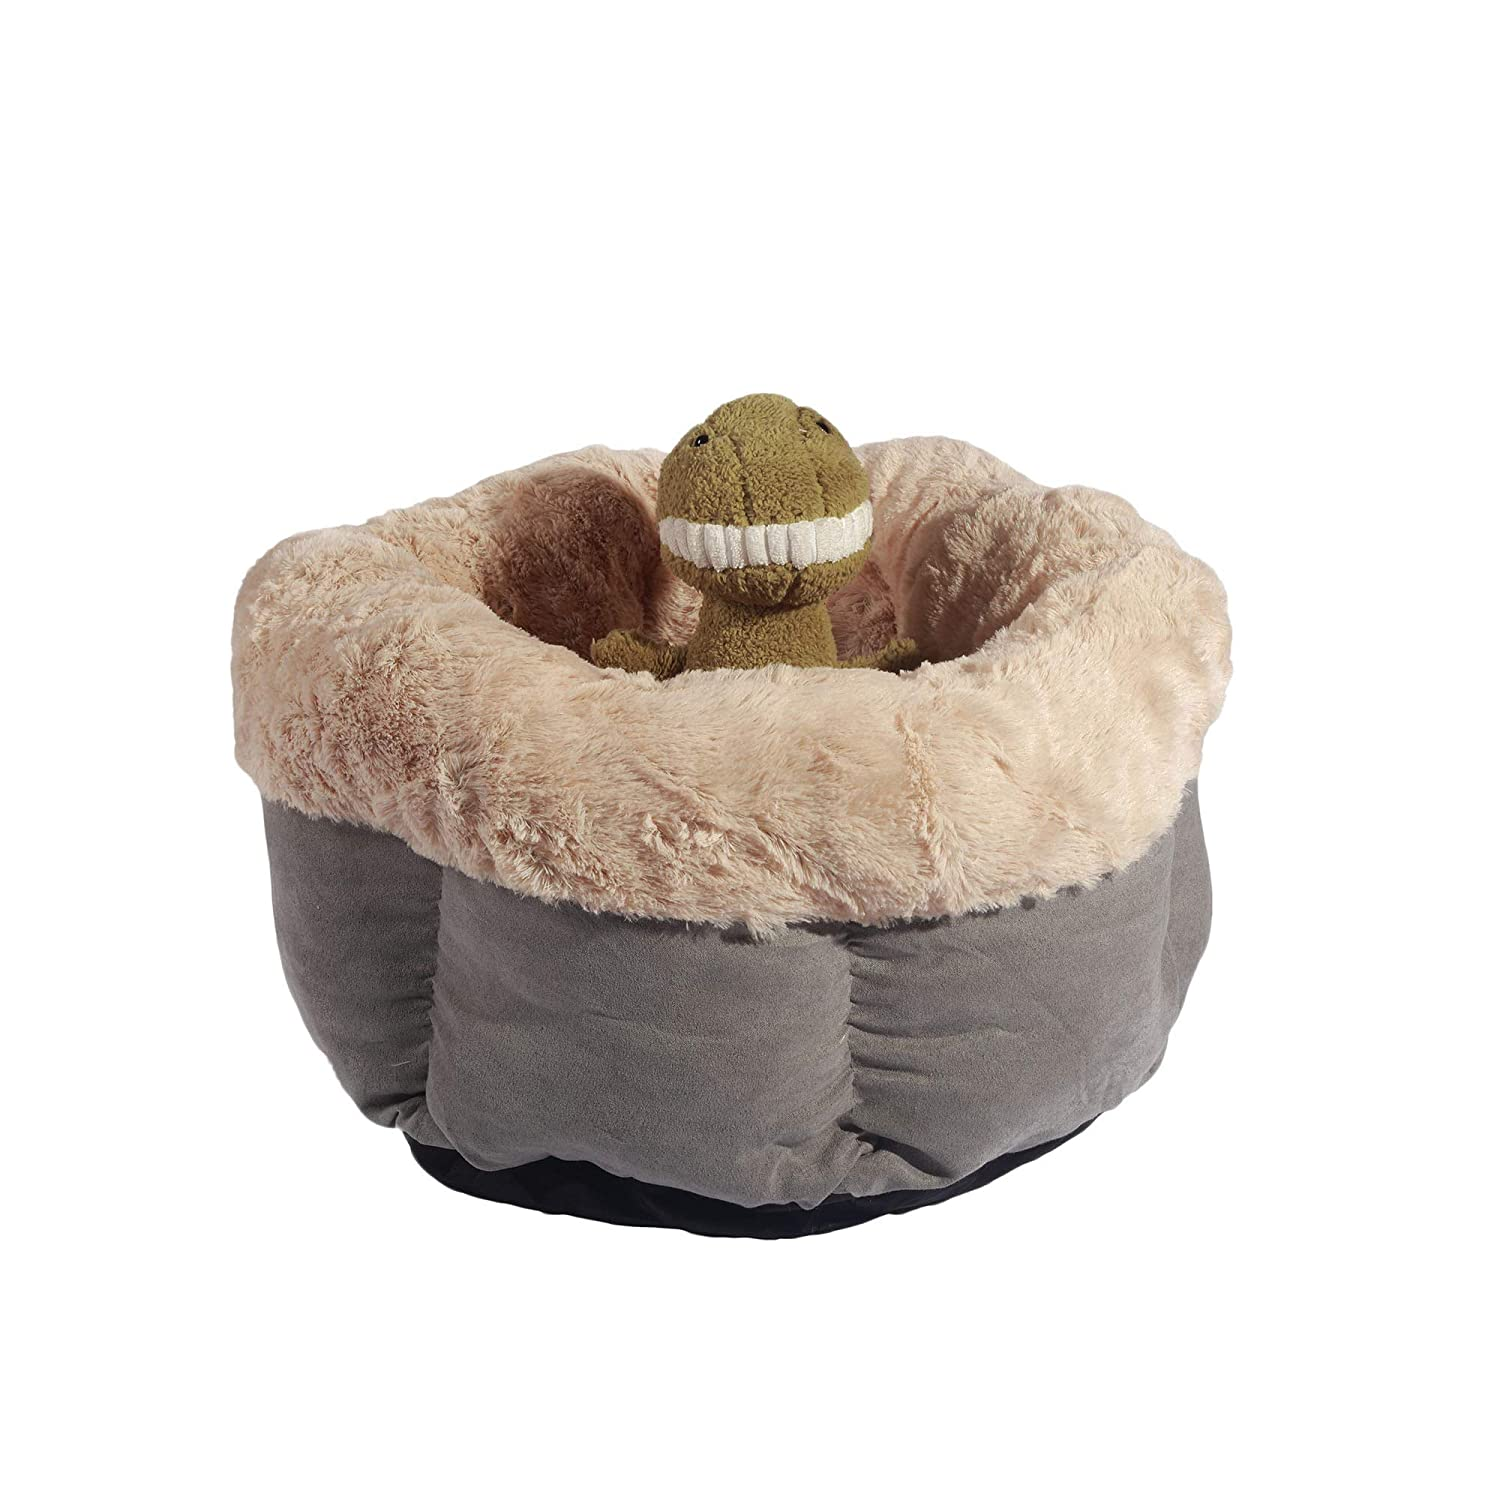 ANPI Pet Bed Cave 42x42x25cm Deep Dish Cuddler Self-Warming Cat and Dog Bed Cushion for Joint-Relief and Improved Sleep Grey